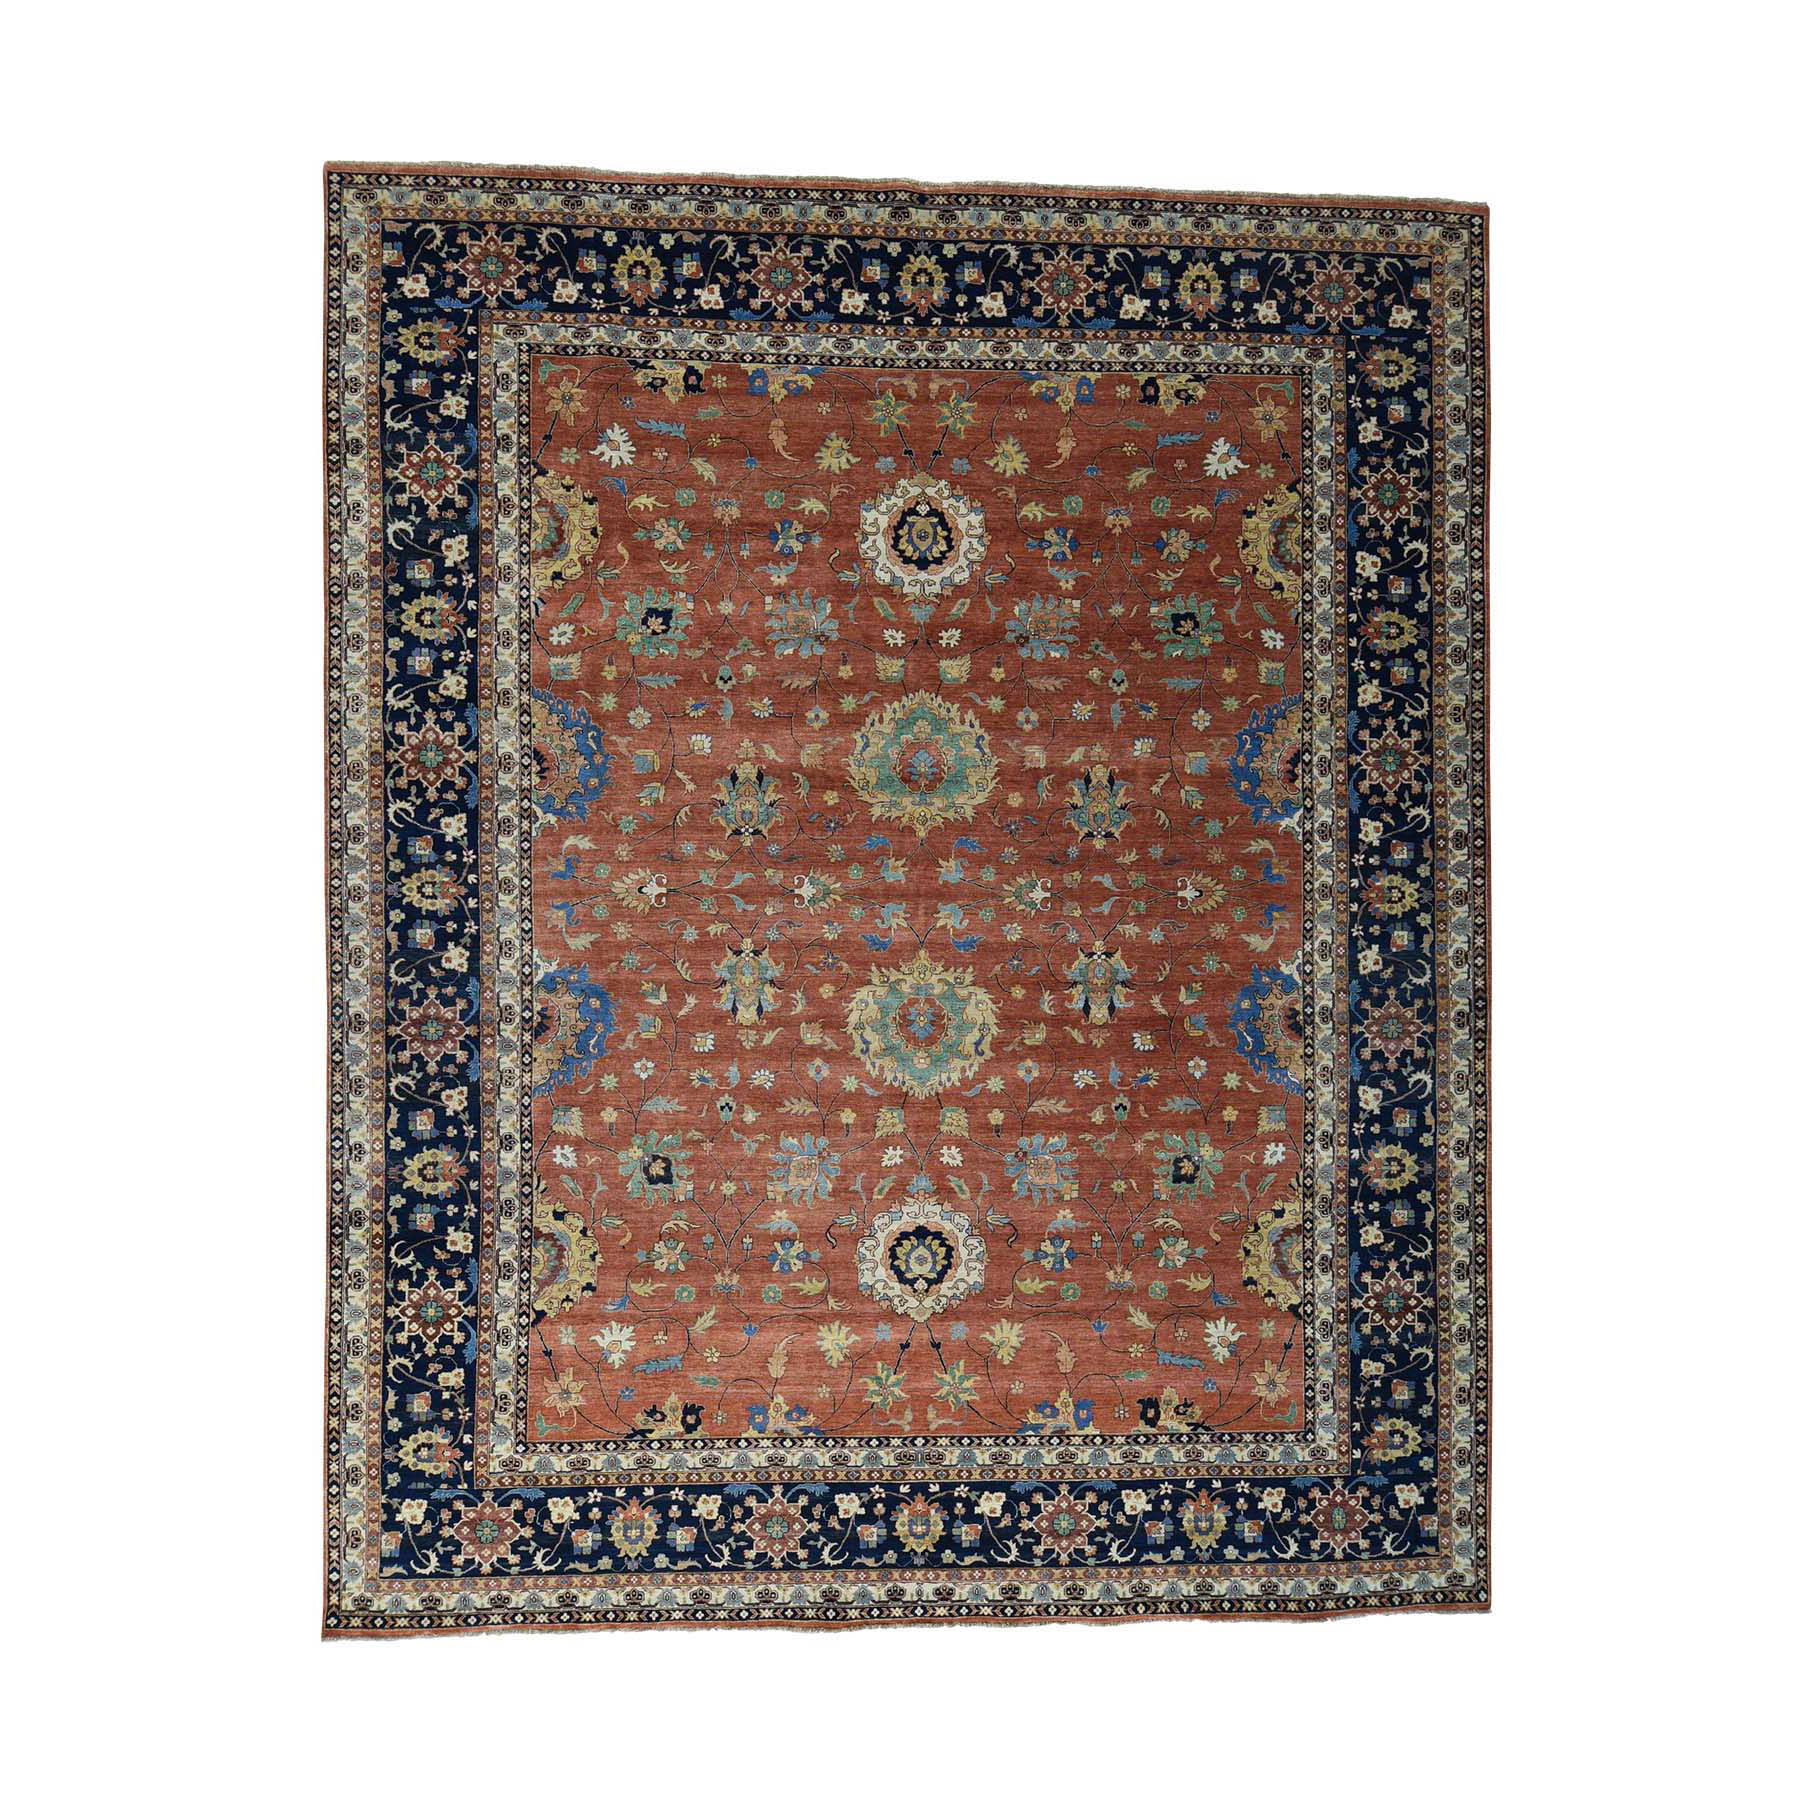 12'x14'9'' Hand Woven Antiqued Heriz Oversize All Over Design Rug